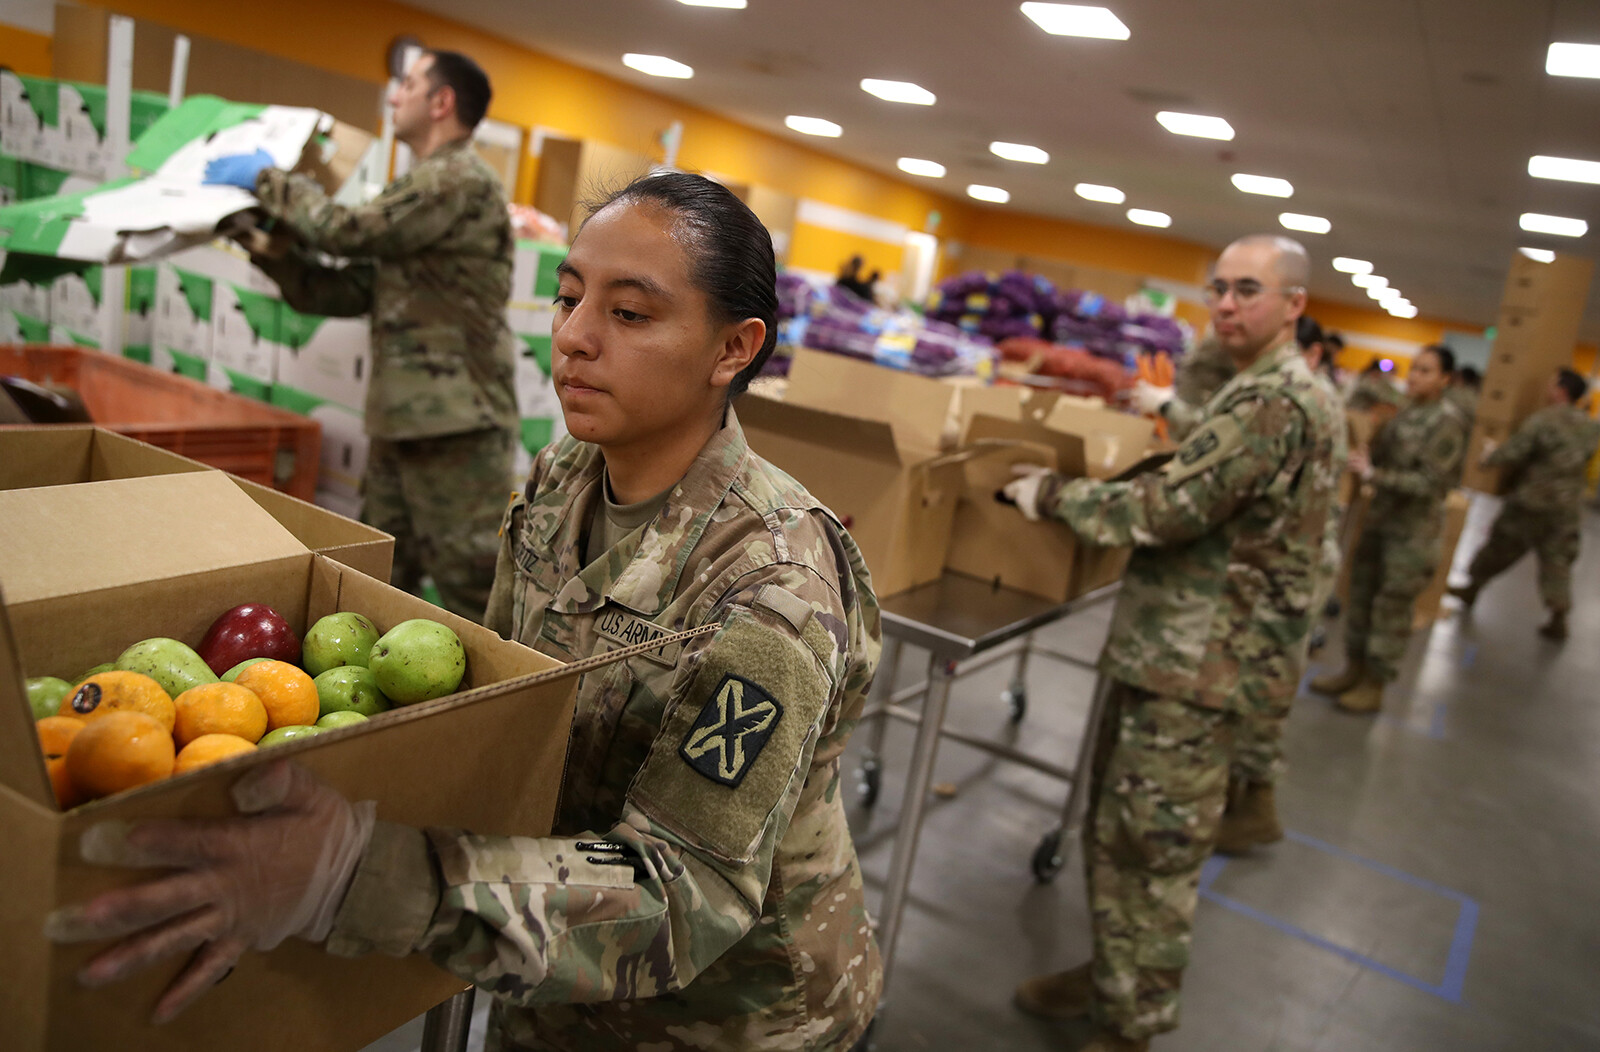 More children faced food insecurity last year during pandemic